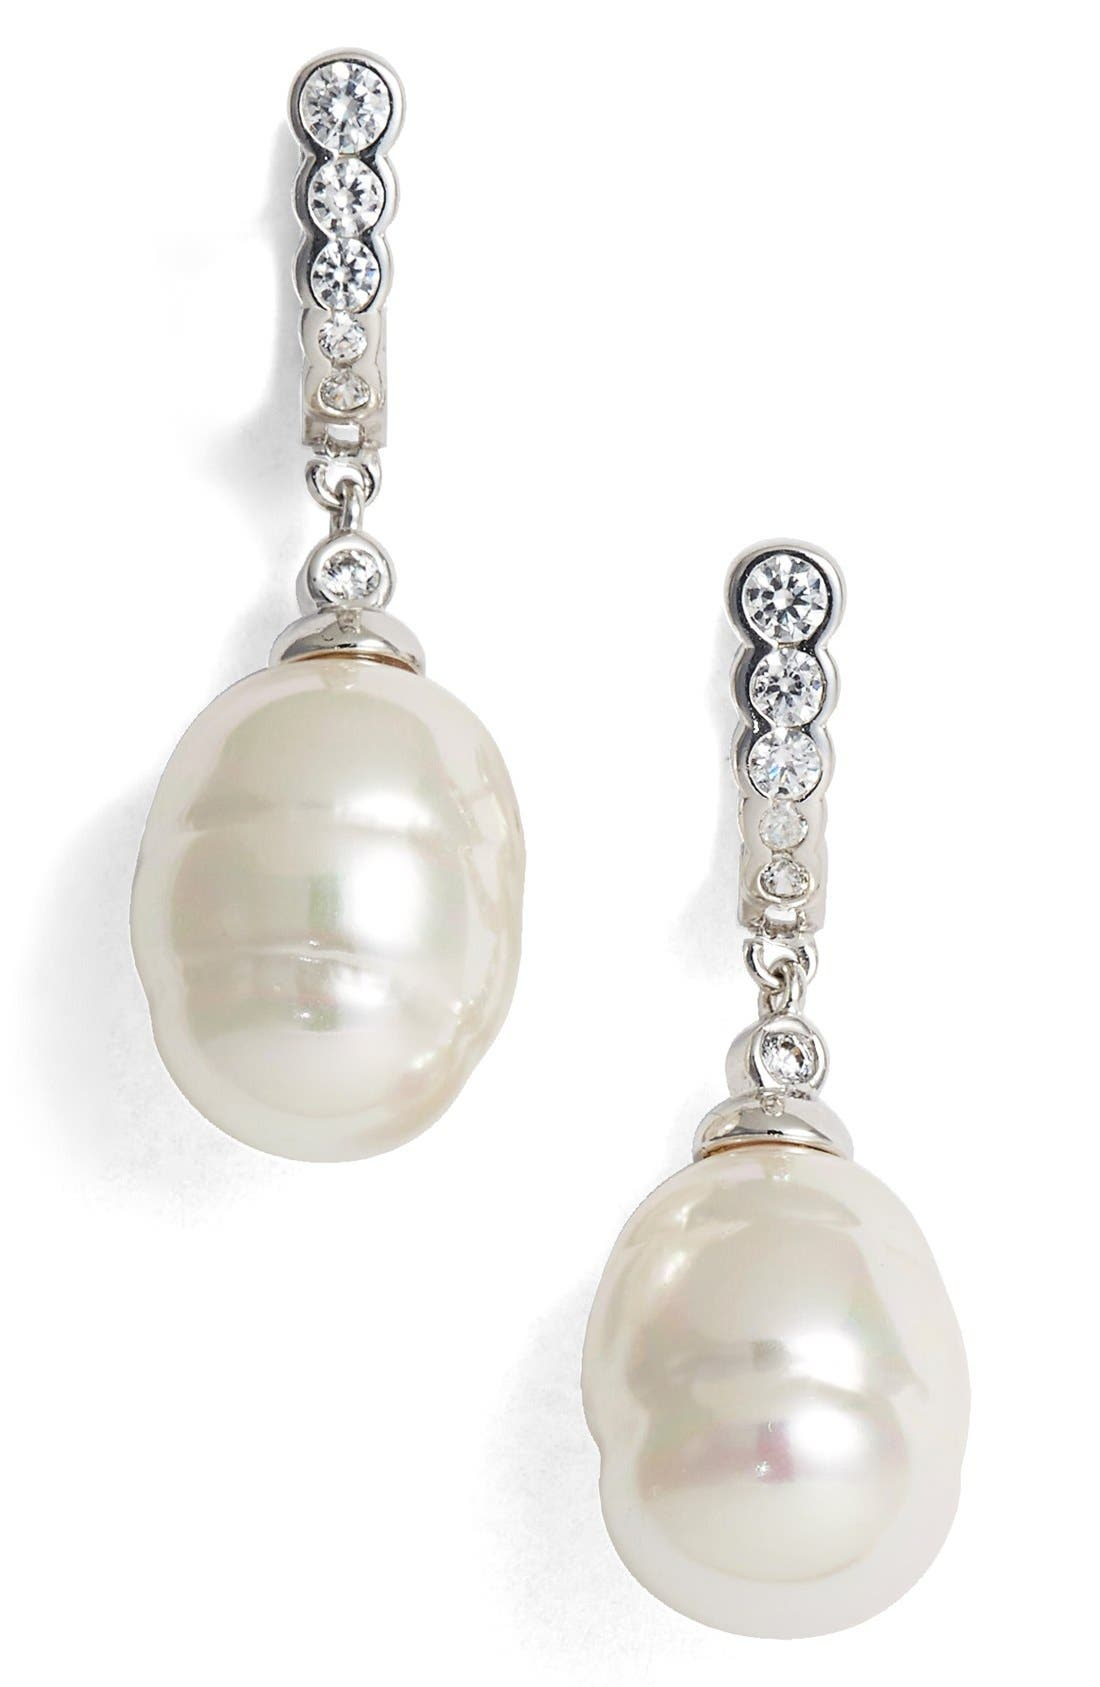 Majorica 14mm Simulated Baroque Pearl & Cubic Zirconia Drop Earrings